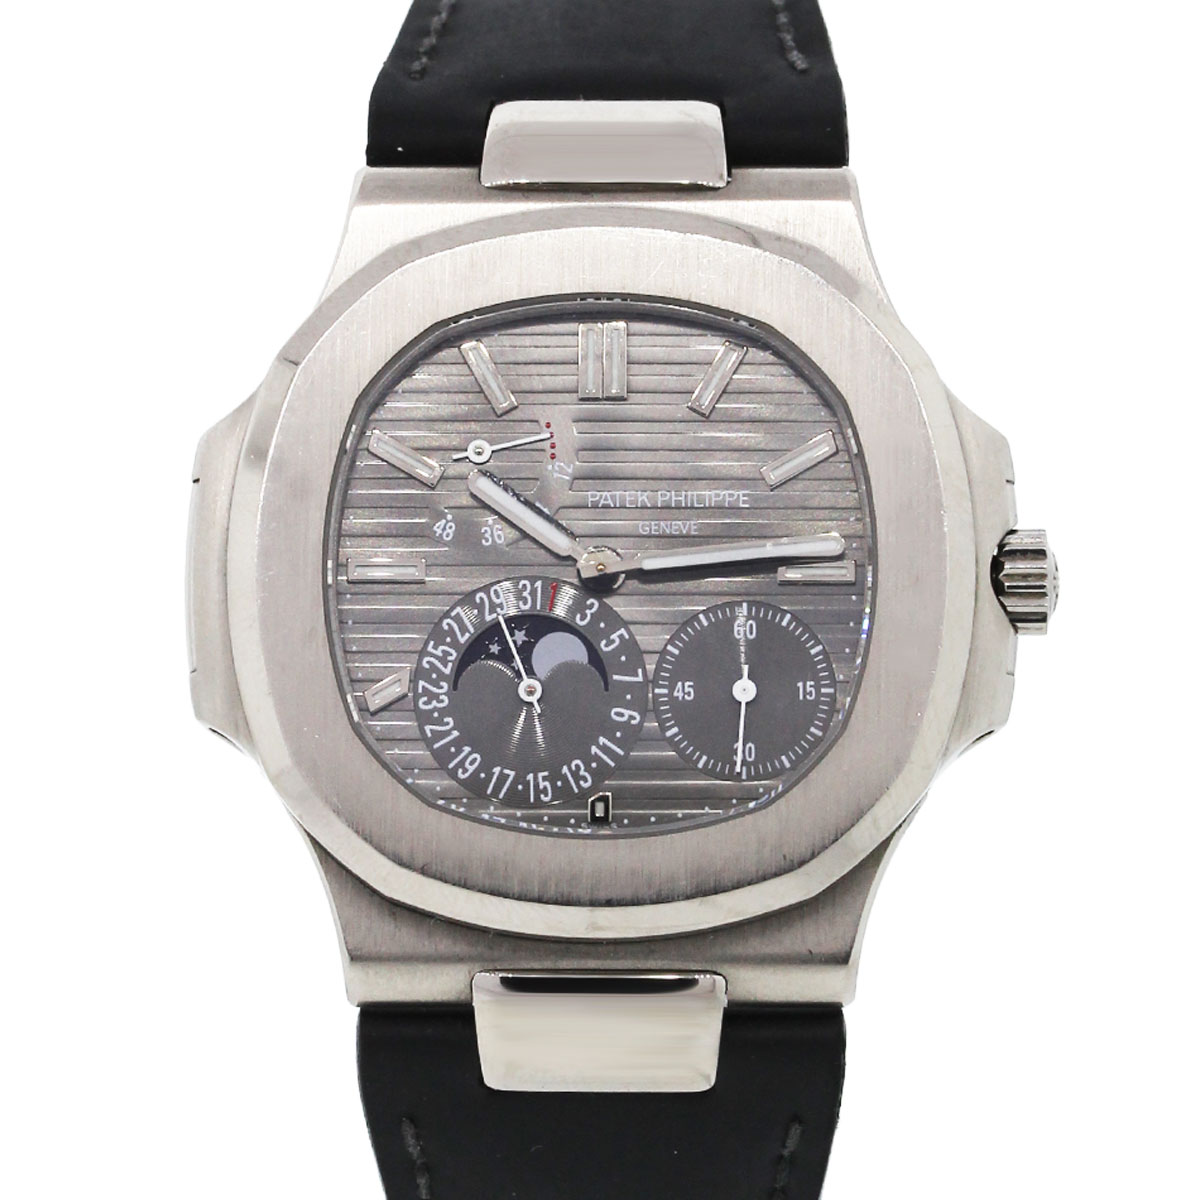 You are viewing this Patek Philippe 5712G Nautilus White Gold on Leather Watch!